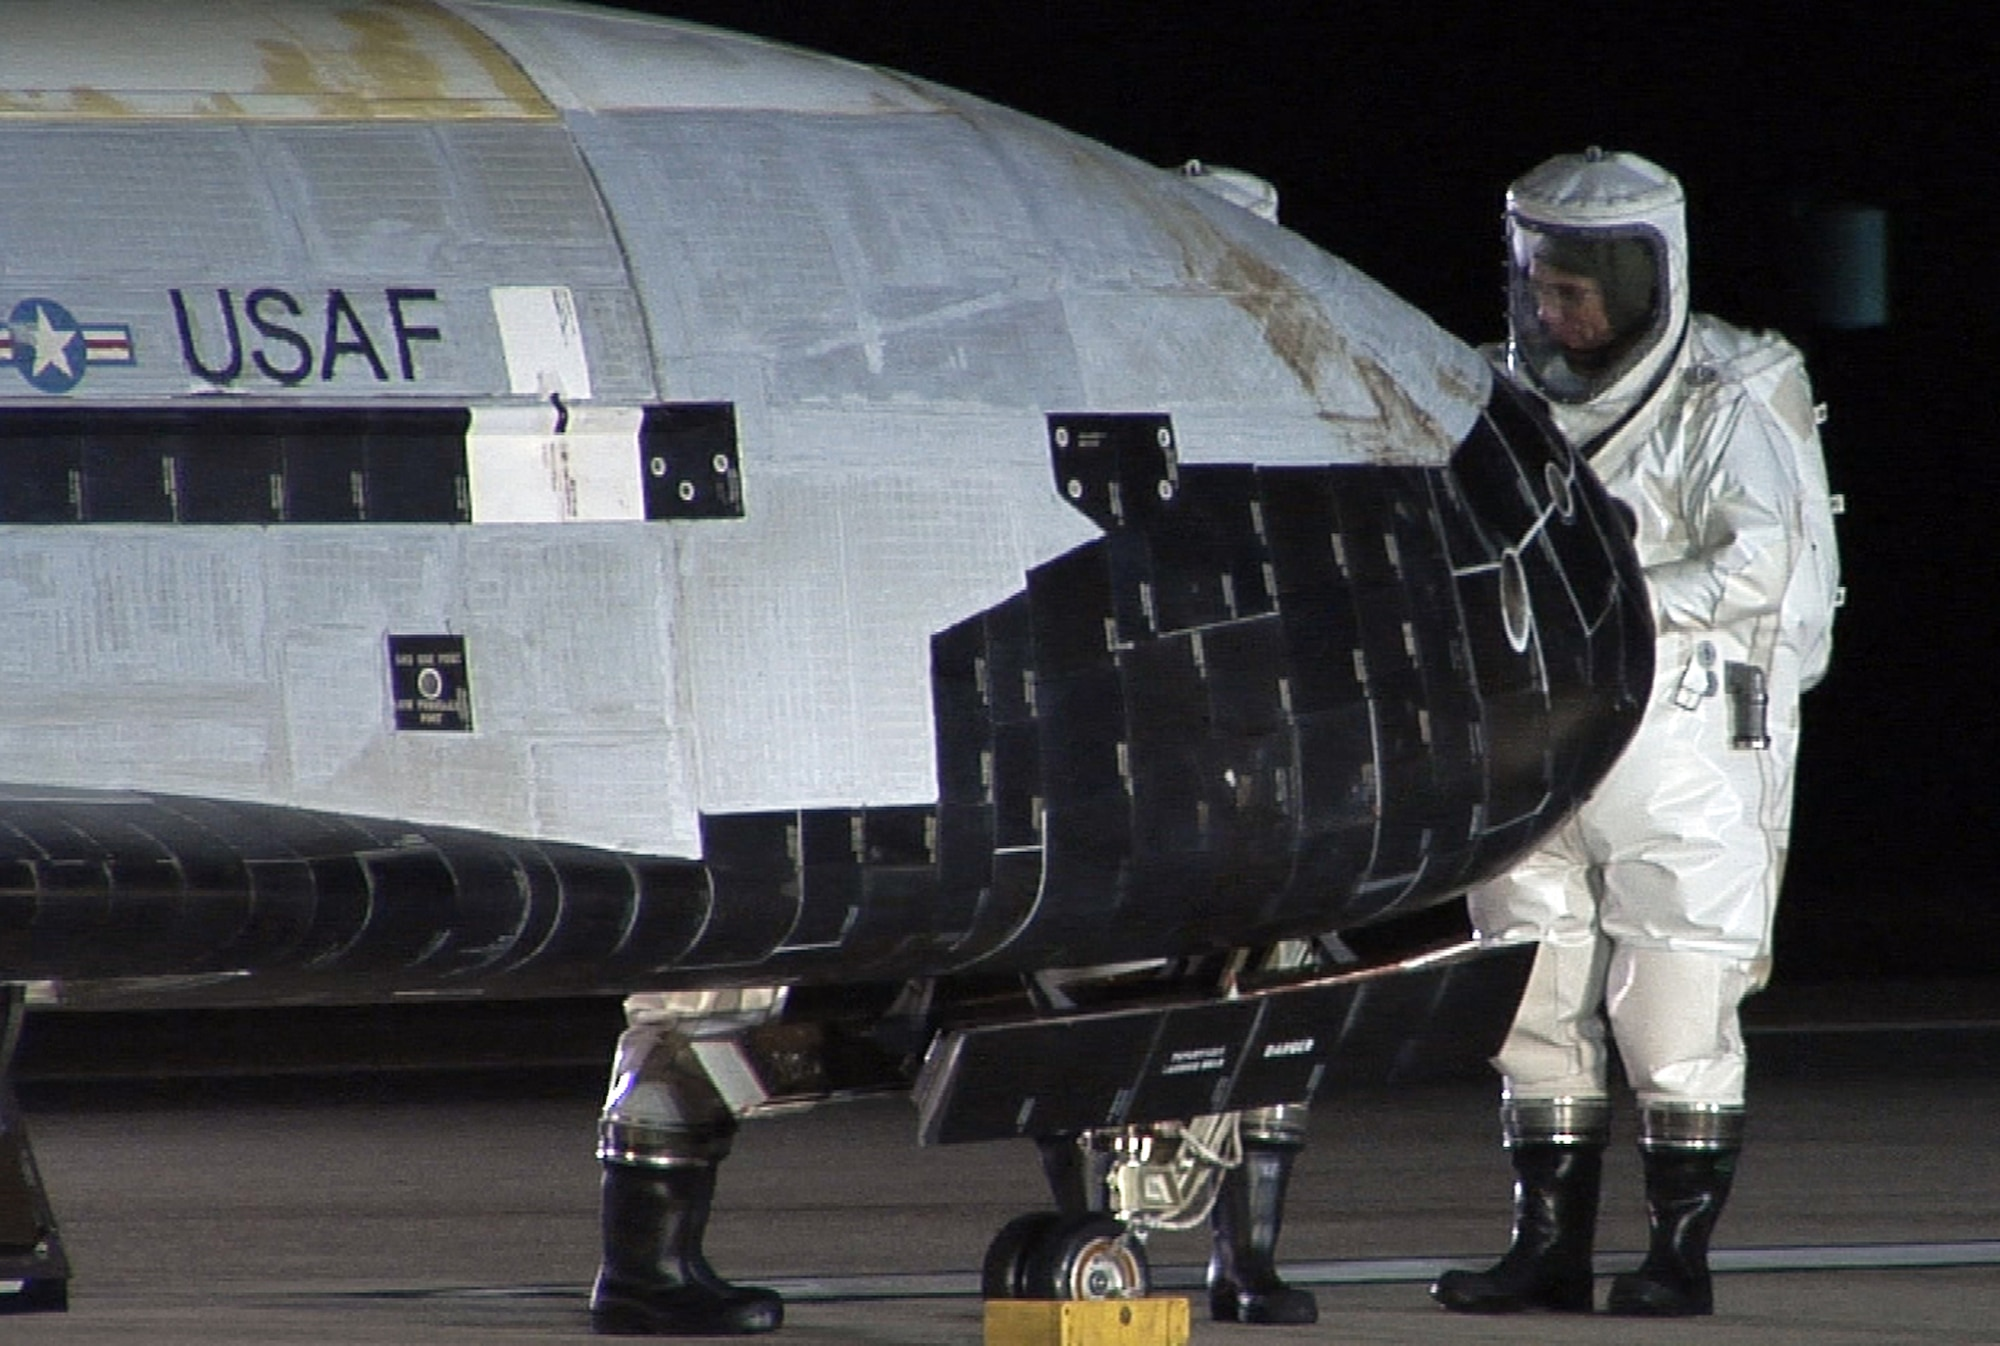 The X-37B Orbital Test Vehicle sits on the runway at Vandenberg Air Force Base, Calif., Dec. 3, 2010, during post-landing operations. Personnel in self-contained atmospheric protective ensemble suits are conducting initial checks on the vehicle and ensuring the area is safe. The X-37B launched April 22 from Cape Canaveral, Fla., allowing teams to conduct on-orbit experiments for more than 220 days during this first mission. (U.S. Air Force photo/Michael Stonecypher)